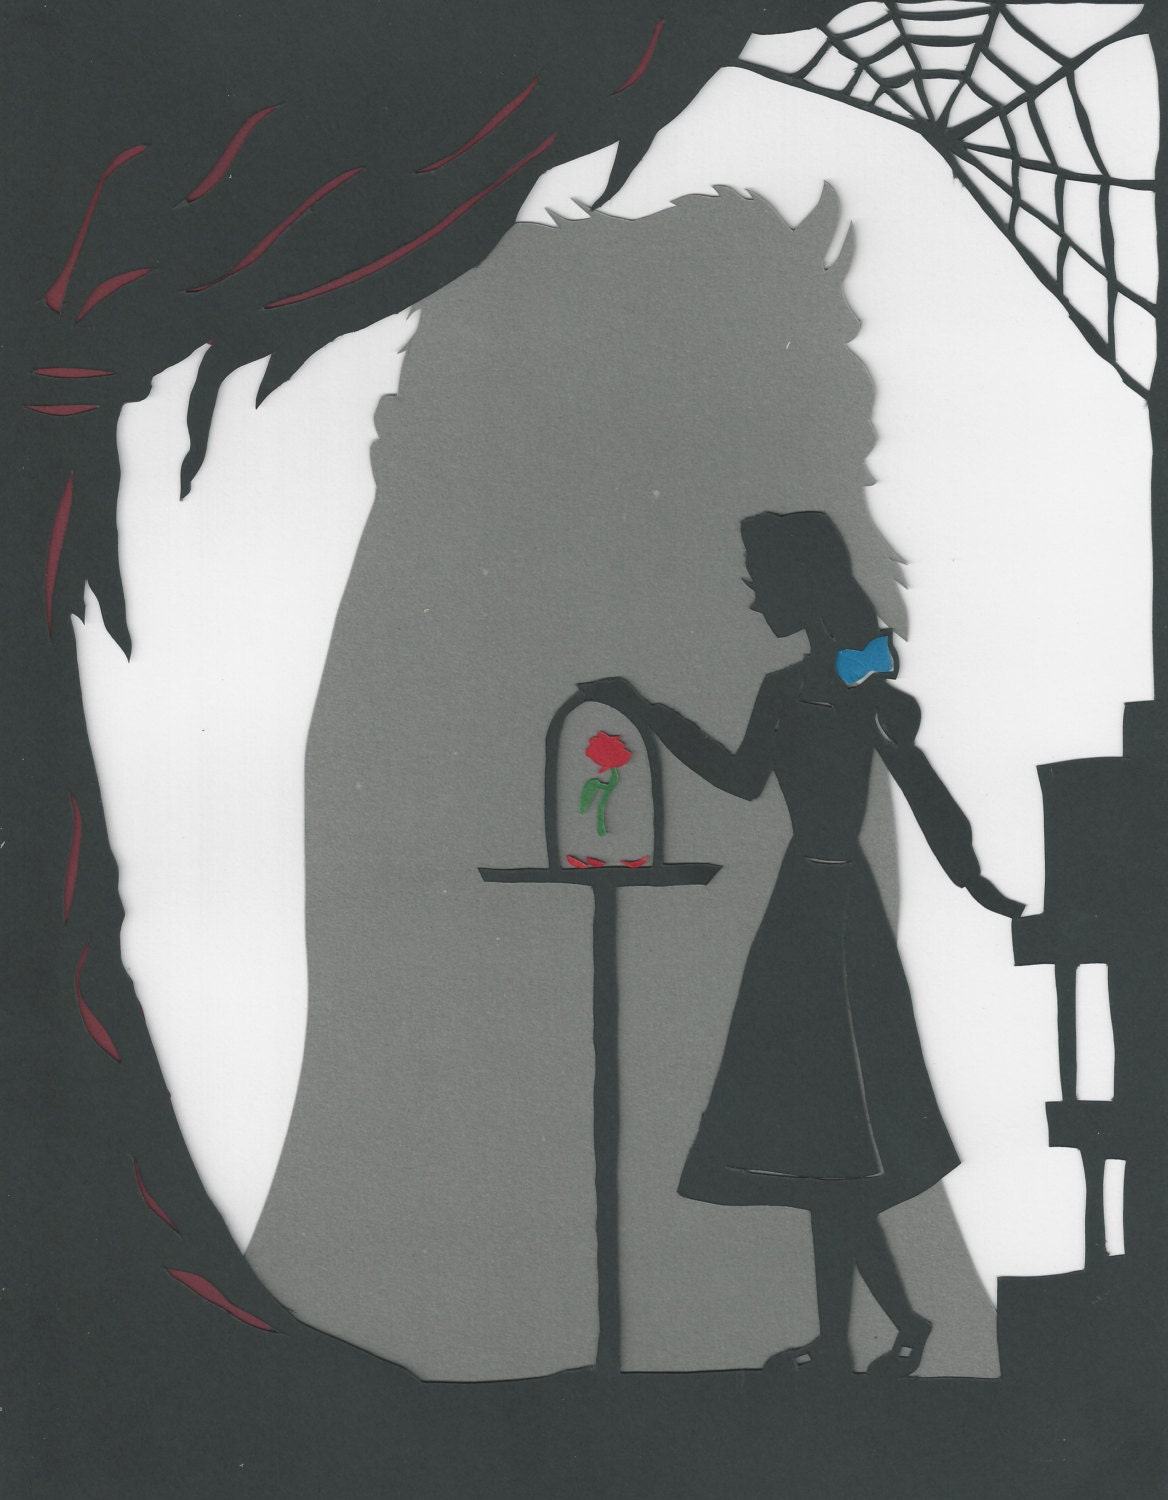 Paper Cut Silhouette, Beauty and the Beast: The Enchanted Rose